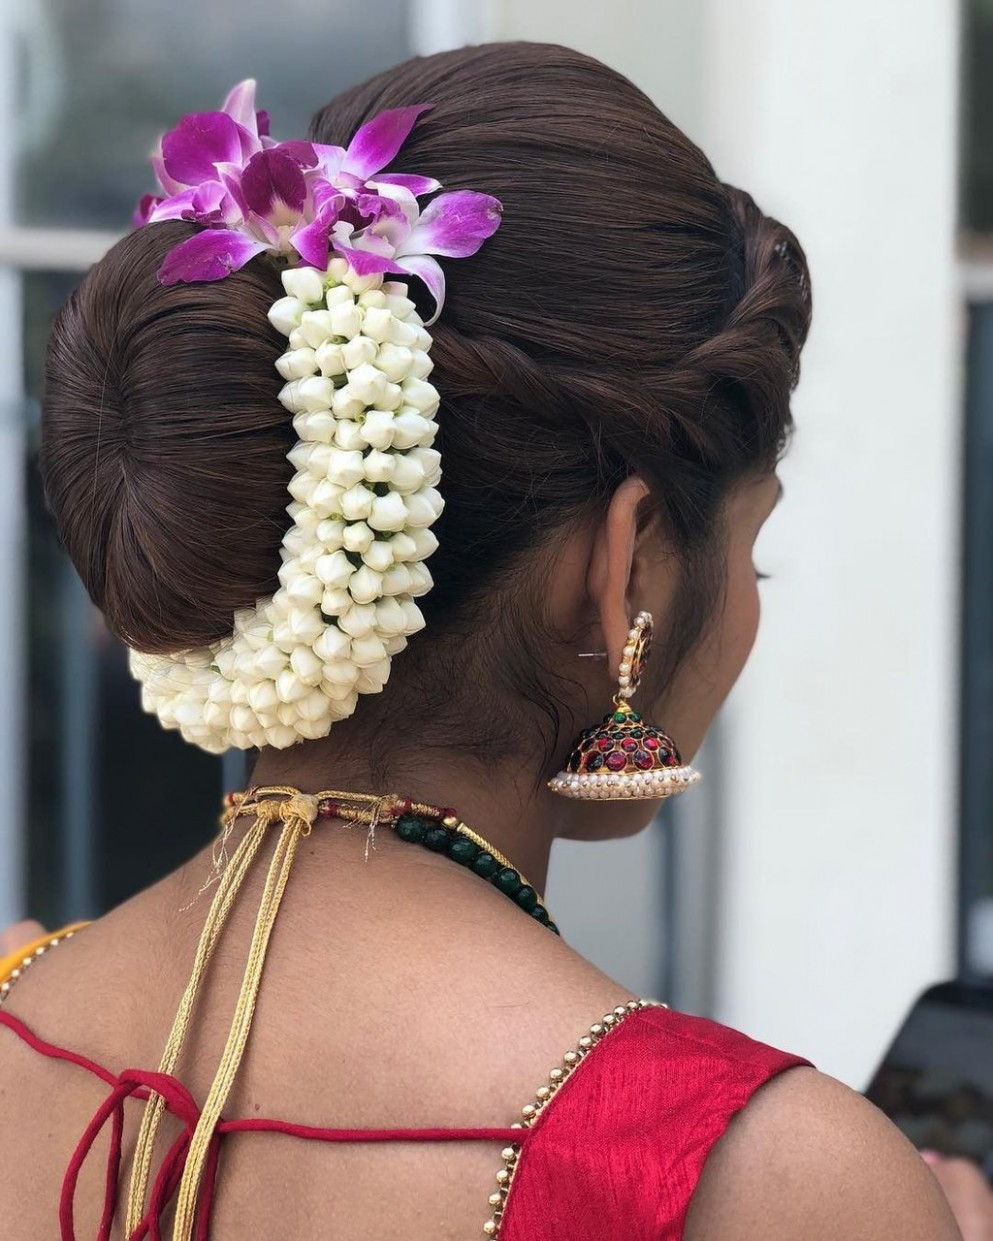 Oh-so-Gorgeous Bridal Hairstyles For All Hair Lengths!